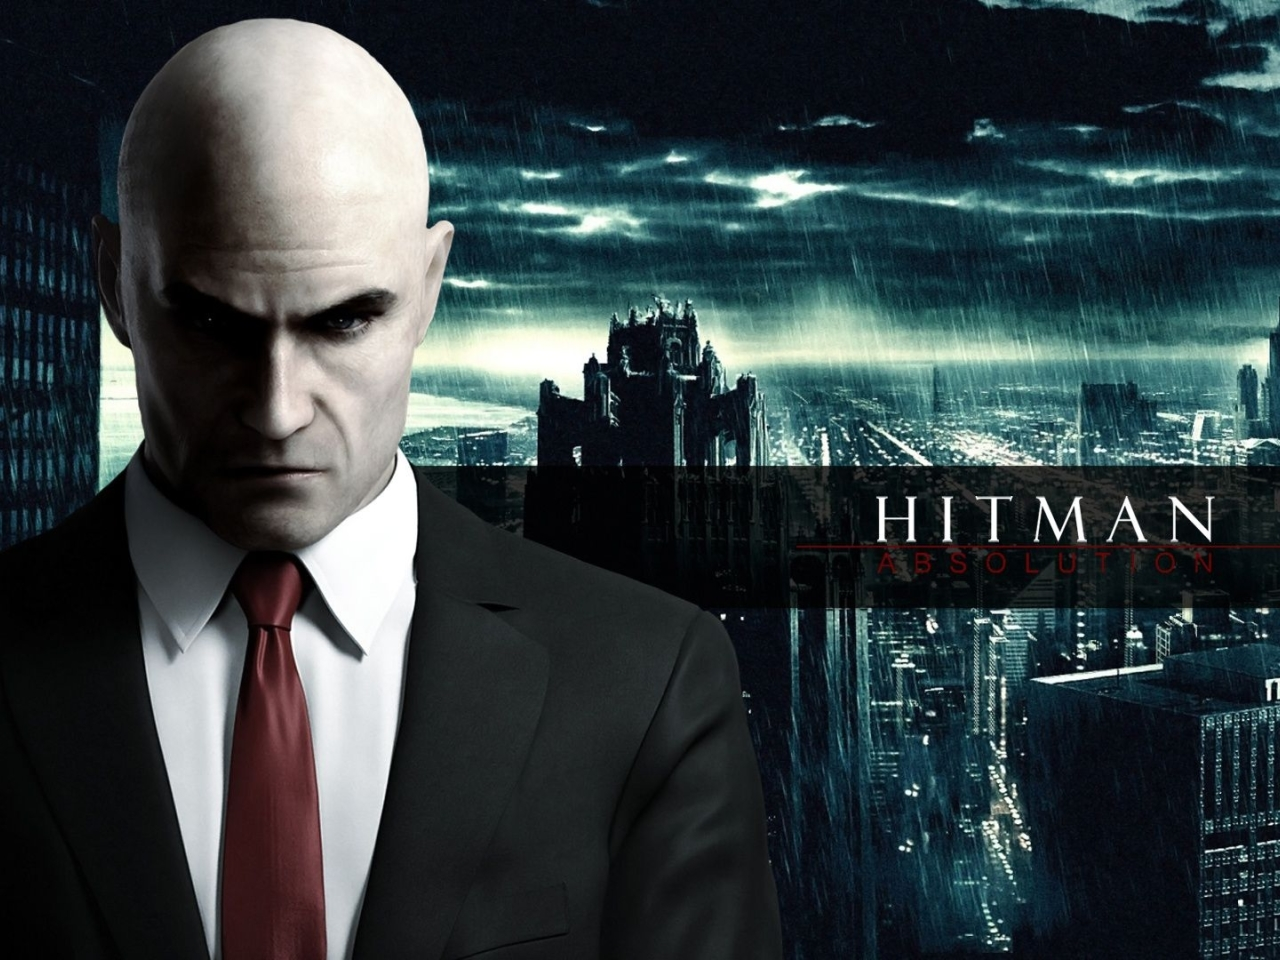 1280x960 hitman, xbox 360, absolution